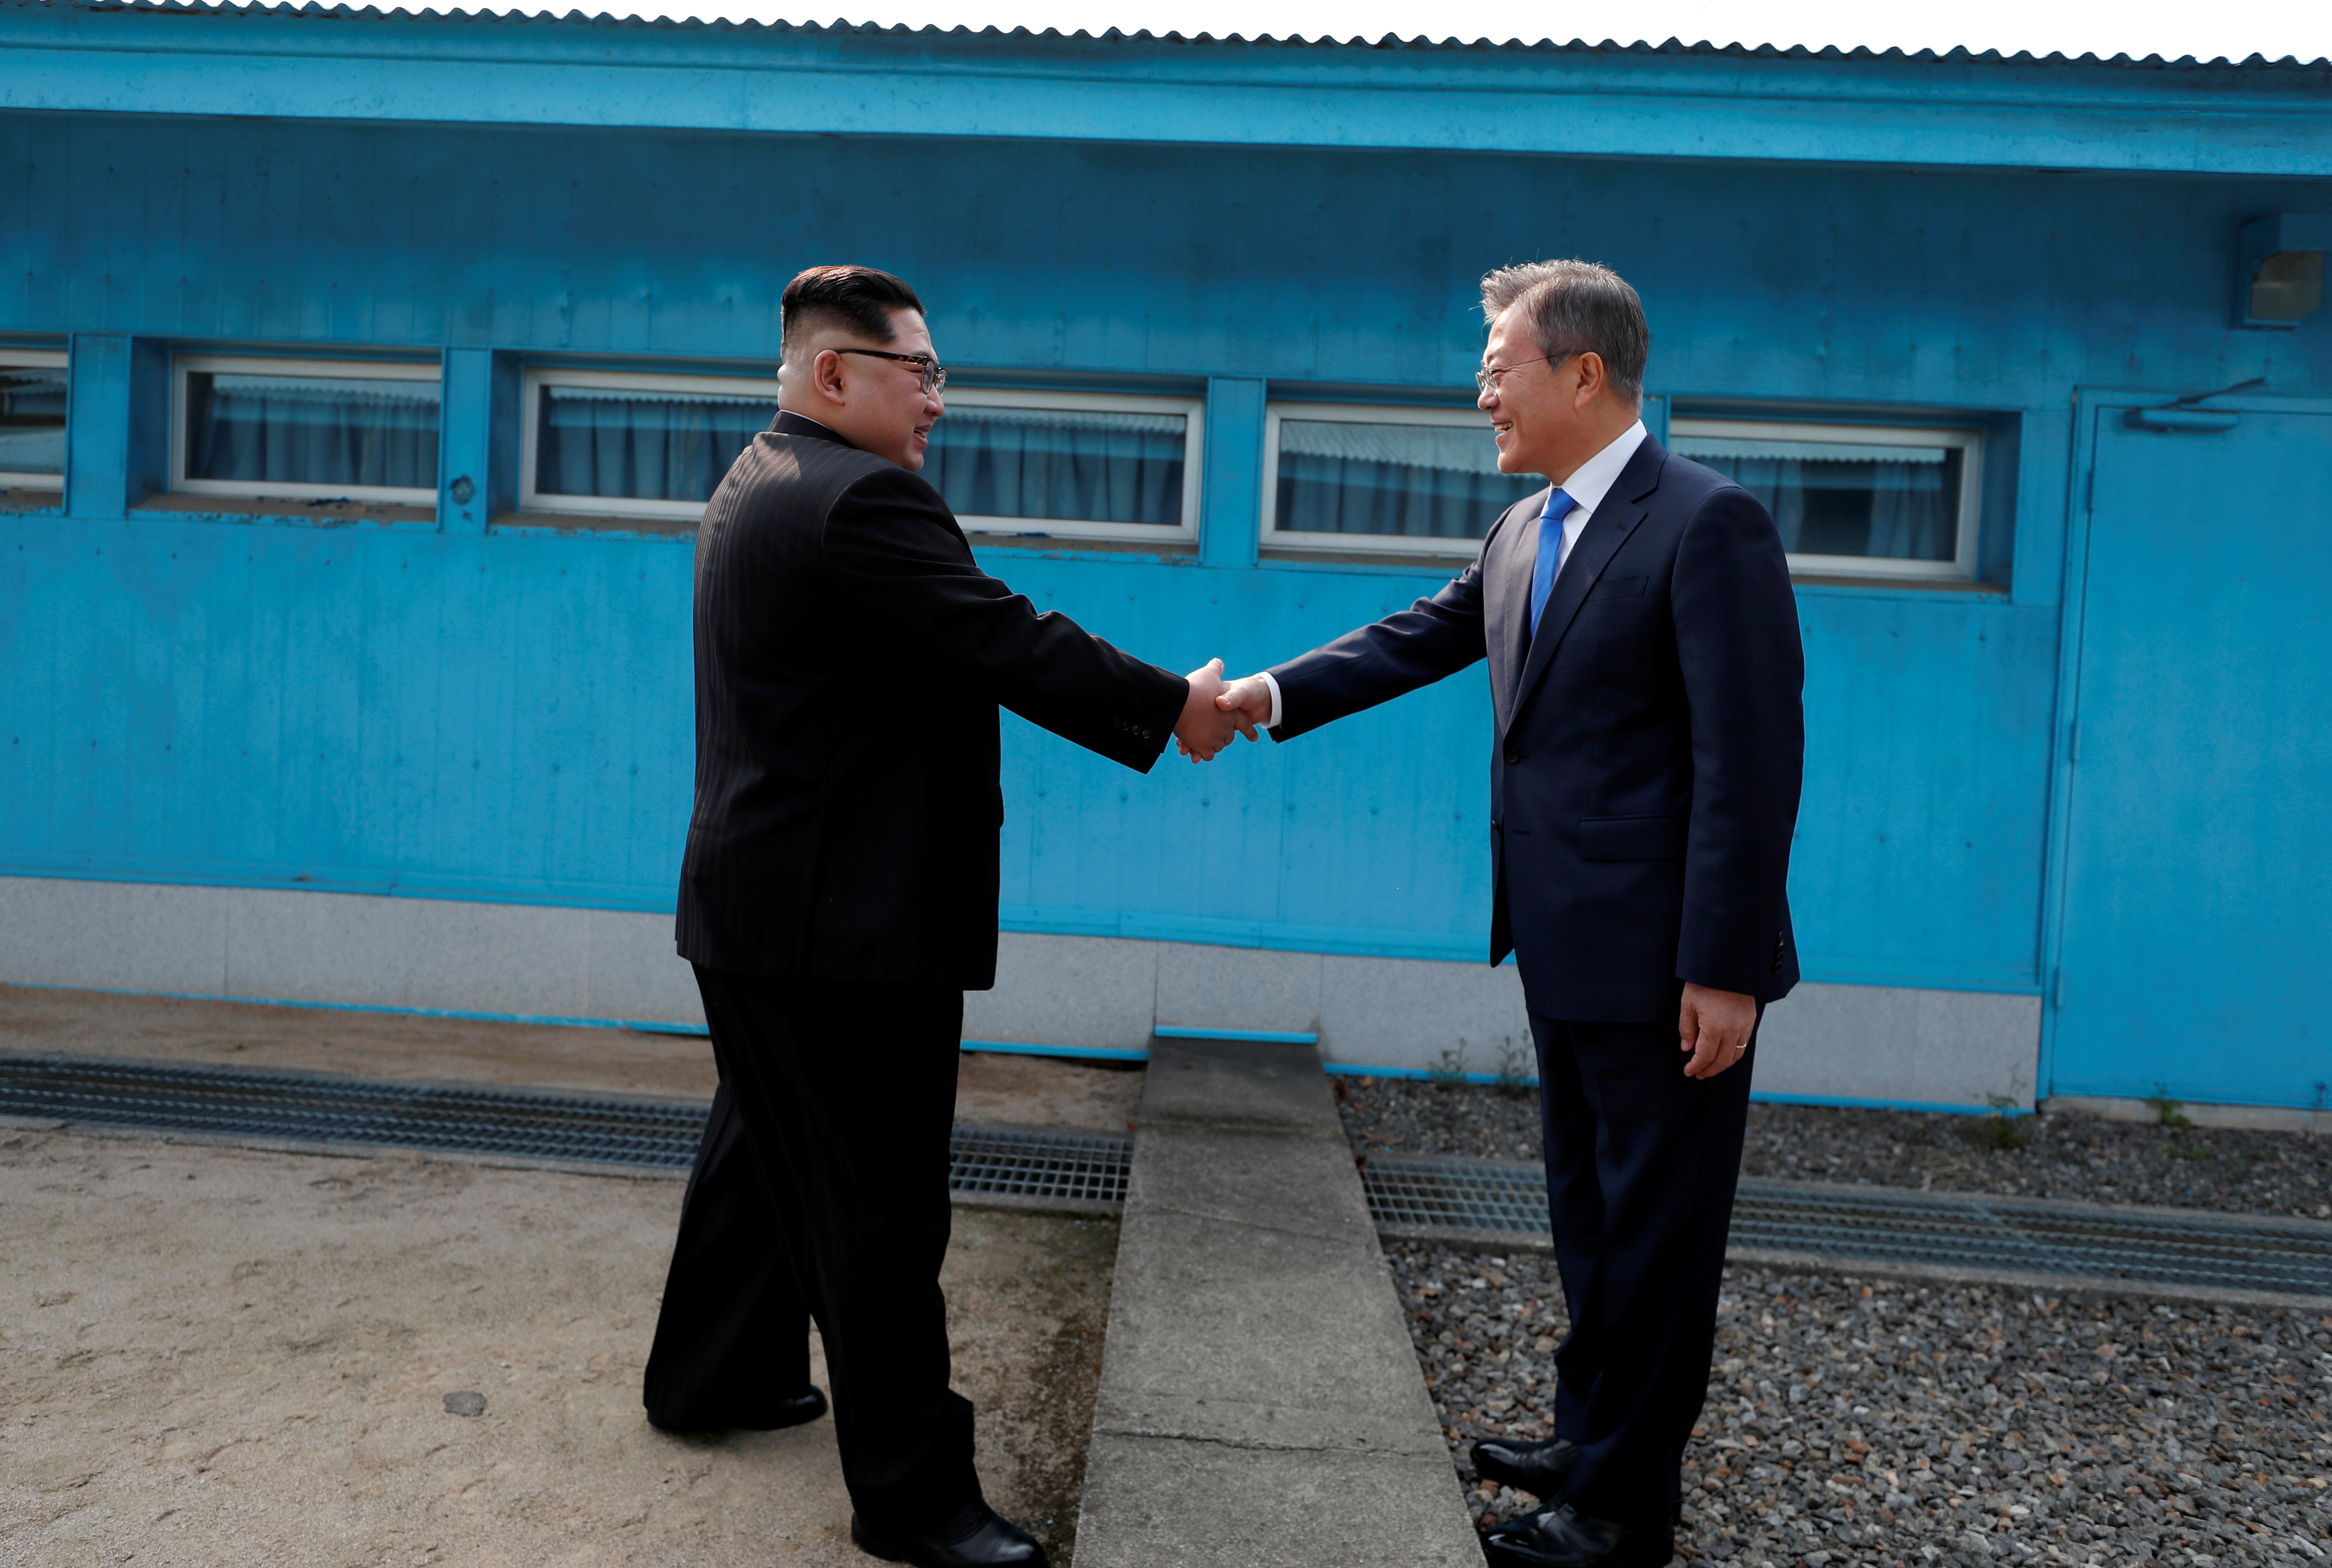 South Korean President Moon Jae-in shakes hands with North Korean leader Kim Jong Un during their meeting at the truce village of Panmunjom inside the demilitarized zone separating the two Koreas, South Korea, April 27, 2018.   Korea Summit Press Pool/Pool via Reuters - RC197FC6AA60